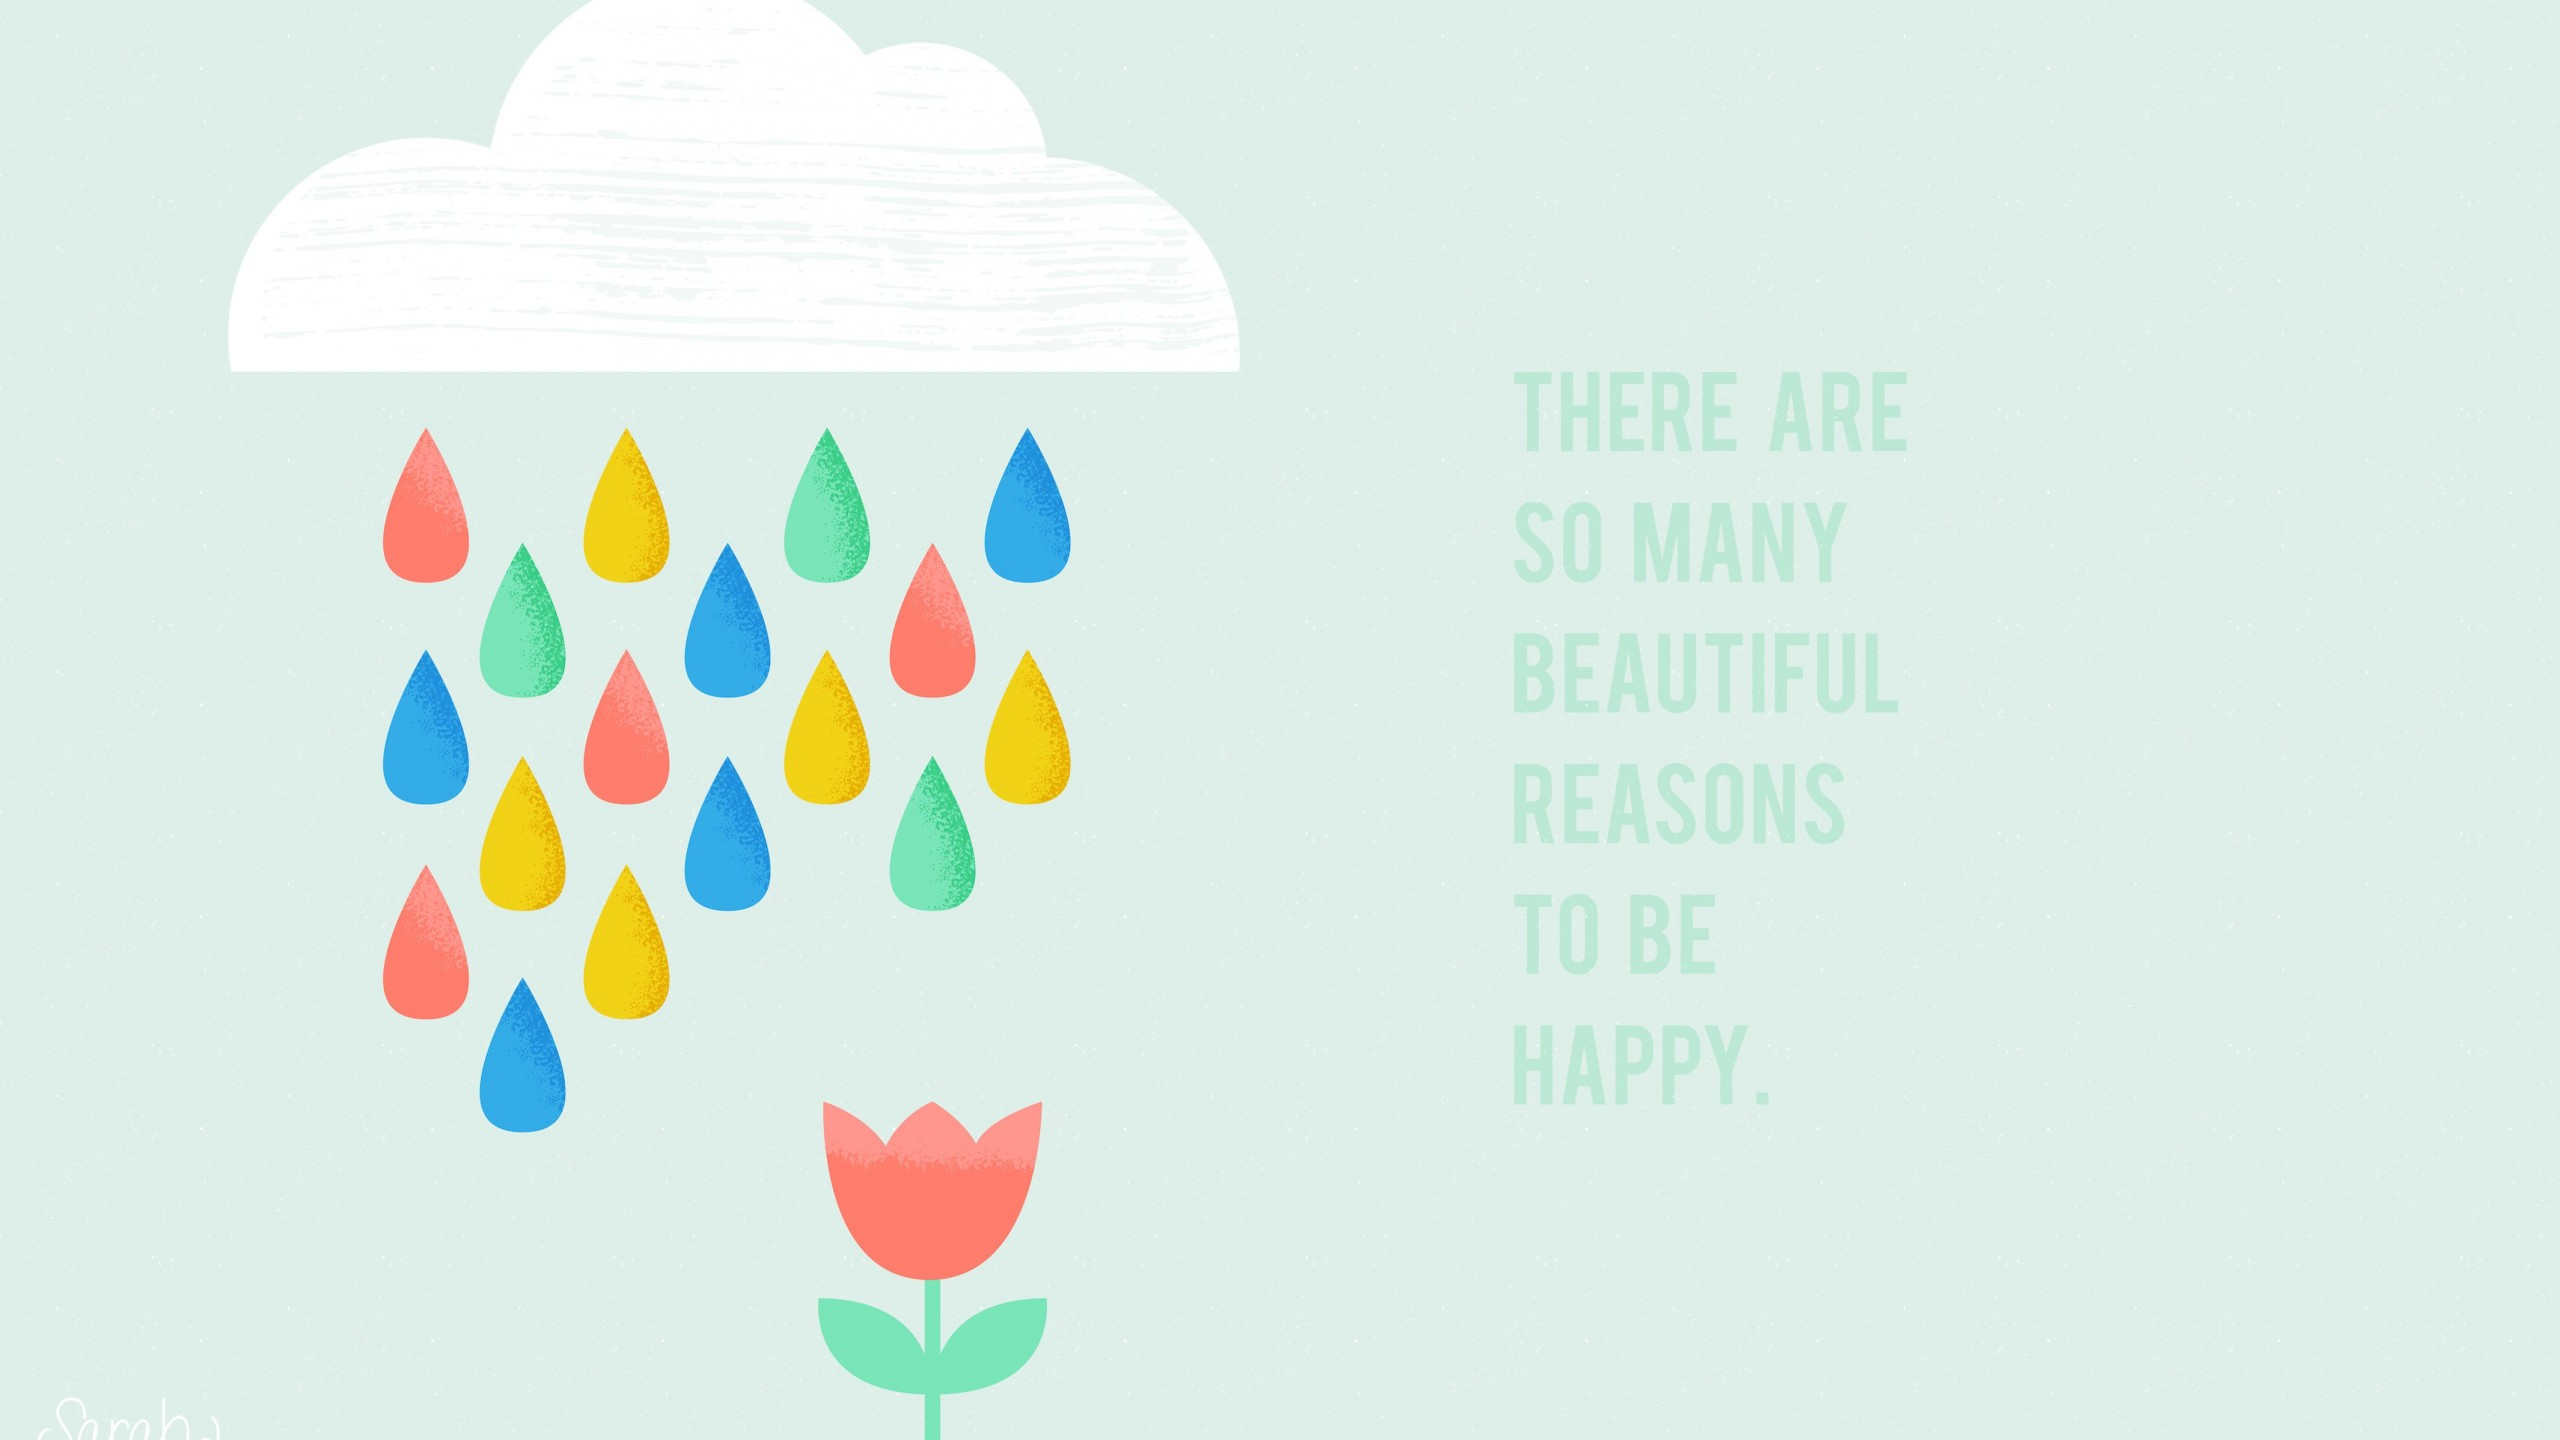 There are so many reasons to be happy Wallpaper for Desktop 2560x1440